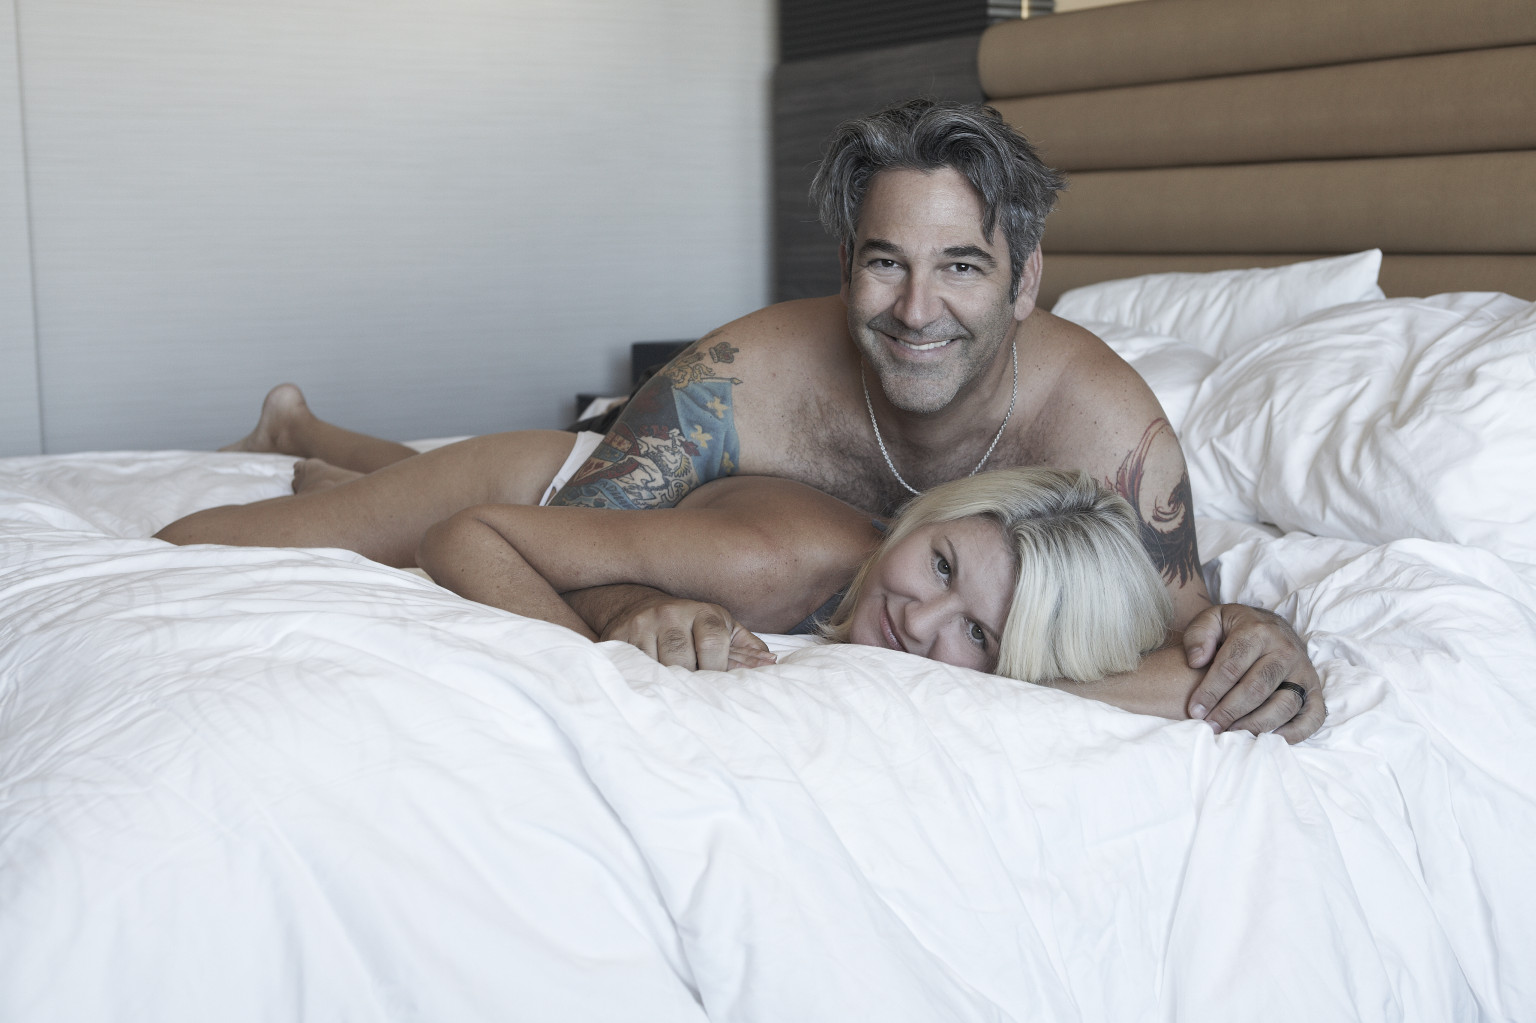 Great Reasons Why People Over 50 Have The Best Sex Lives: http://www.huffingtonpost.com/2013/09/10/sex-after-50_n_3895678.html